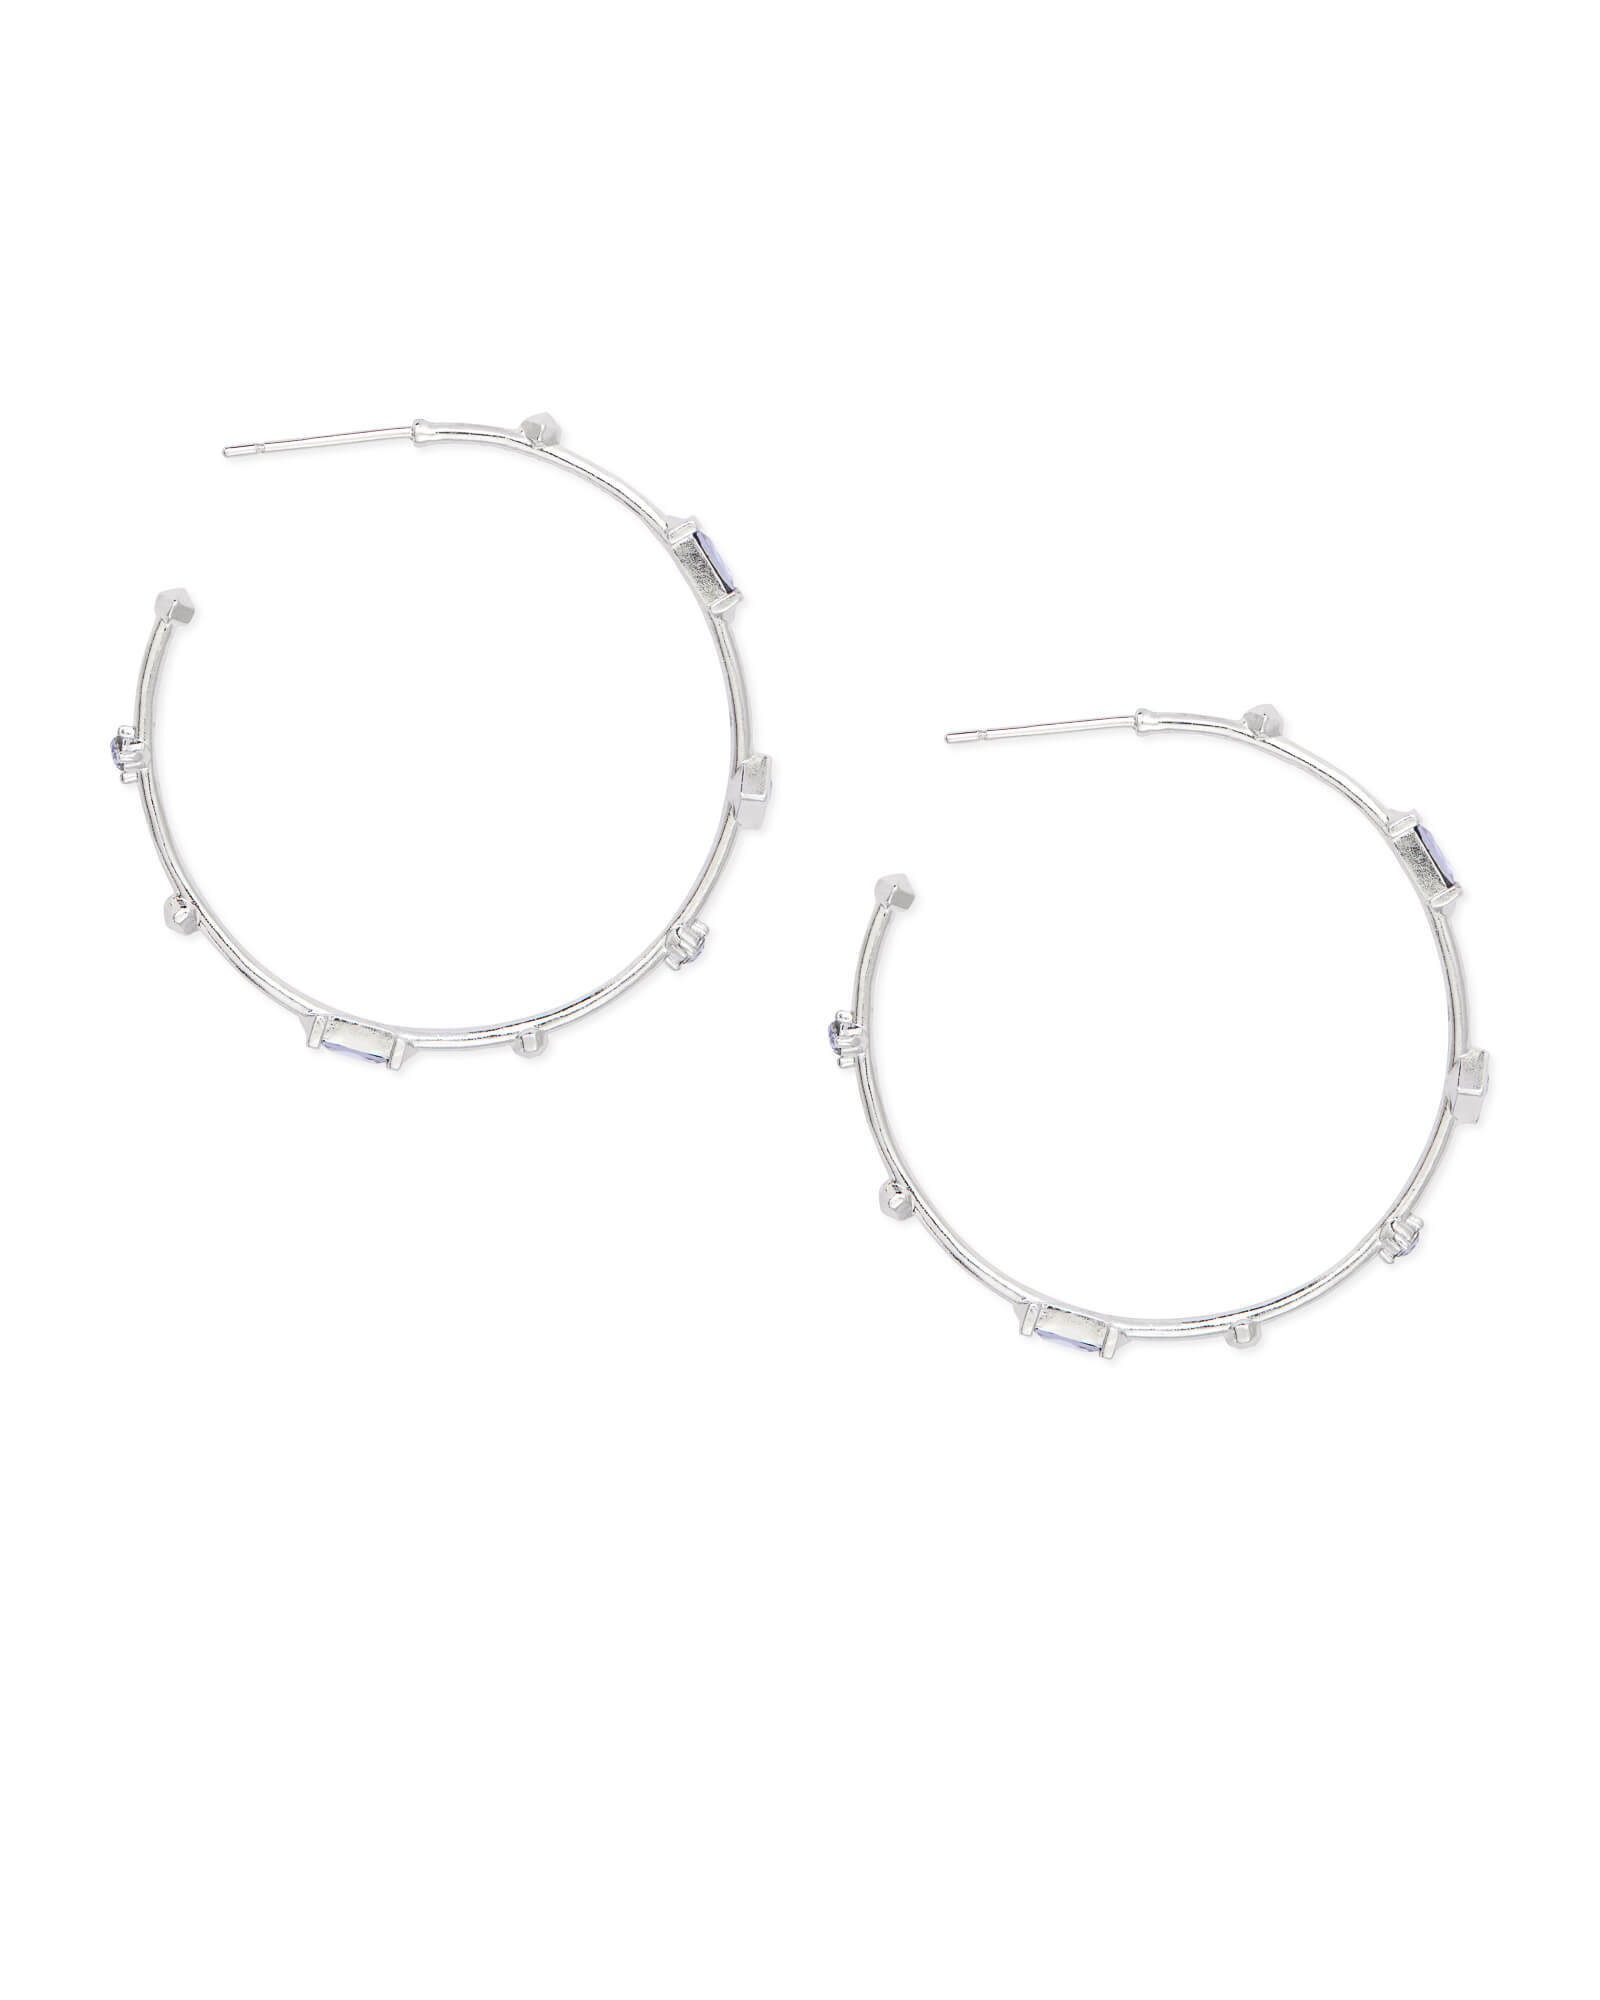 Rhoan Silver Hoop Earrings in Lilac Mix